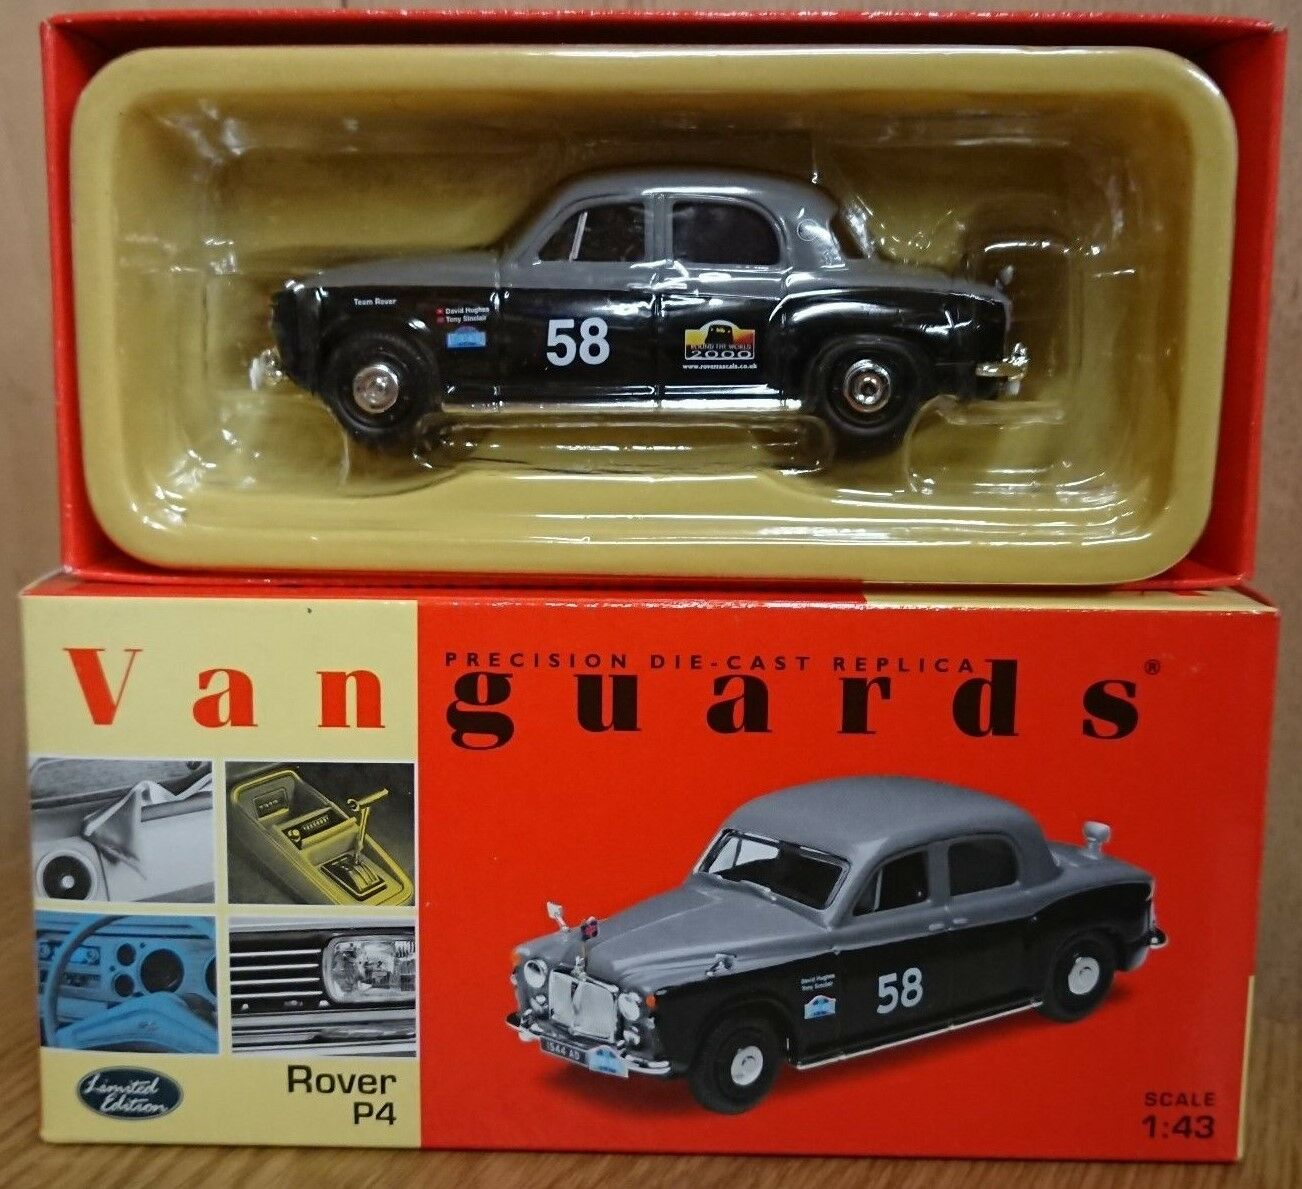 Corgi VA01911 Rover P4 No.58 Round the World Rally Ltd Edition No. 3455 of 4000